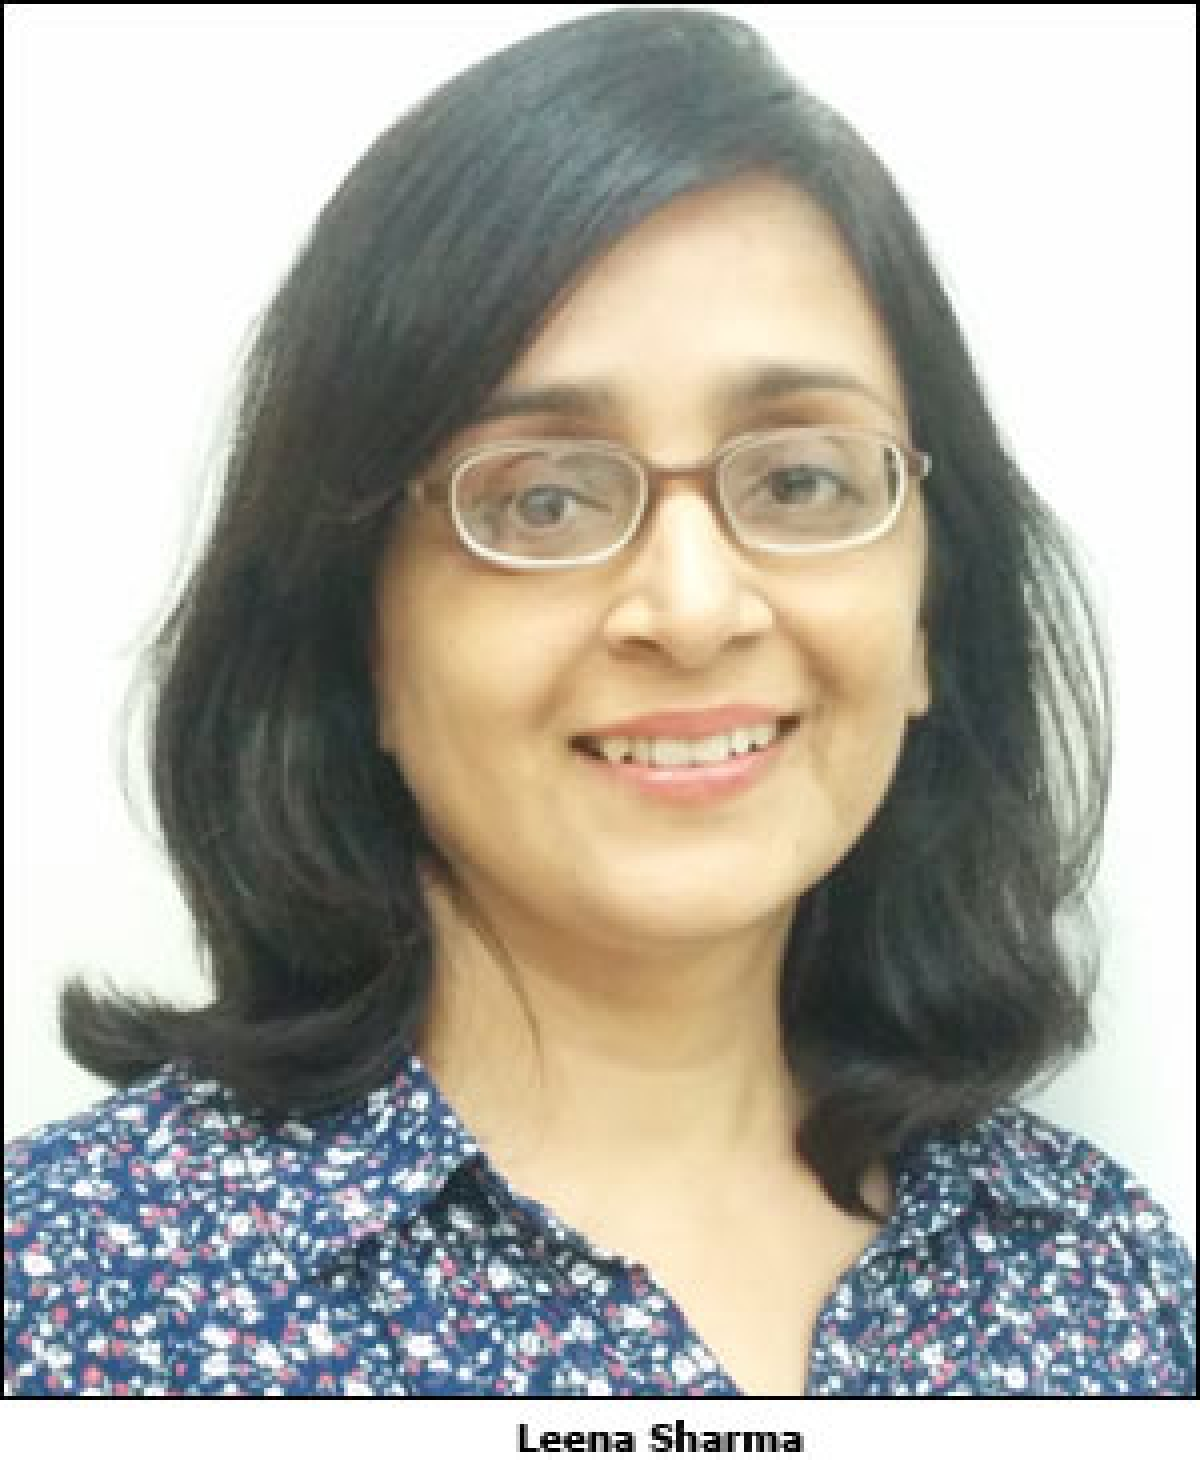 Mobocracy appoints Leena Sharma as chief operating officer